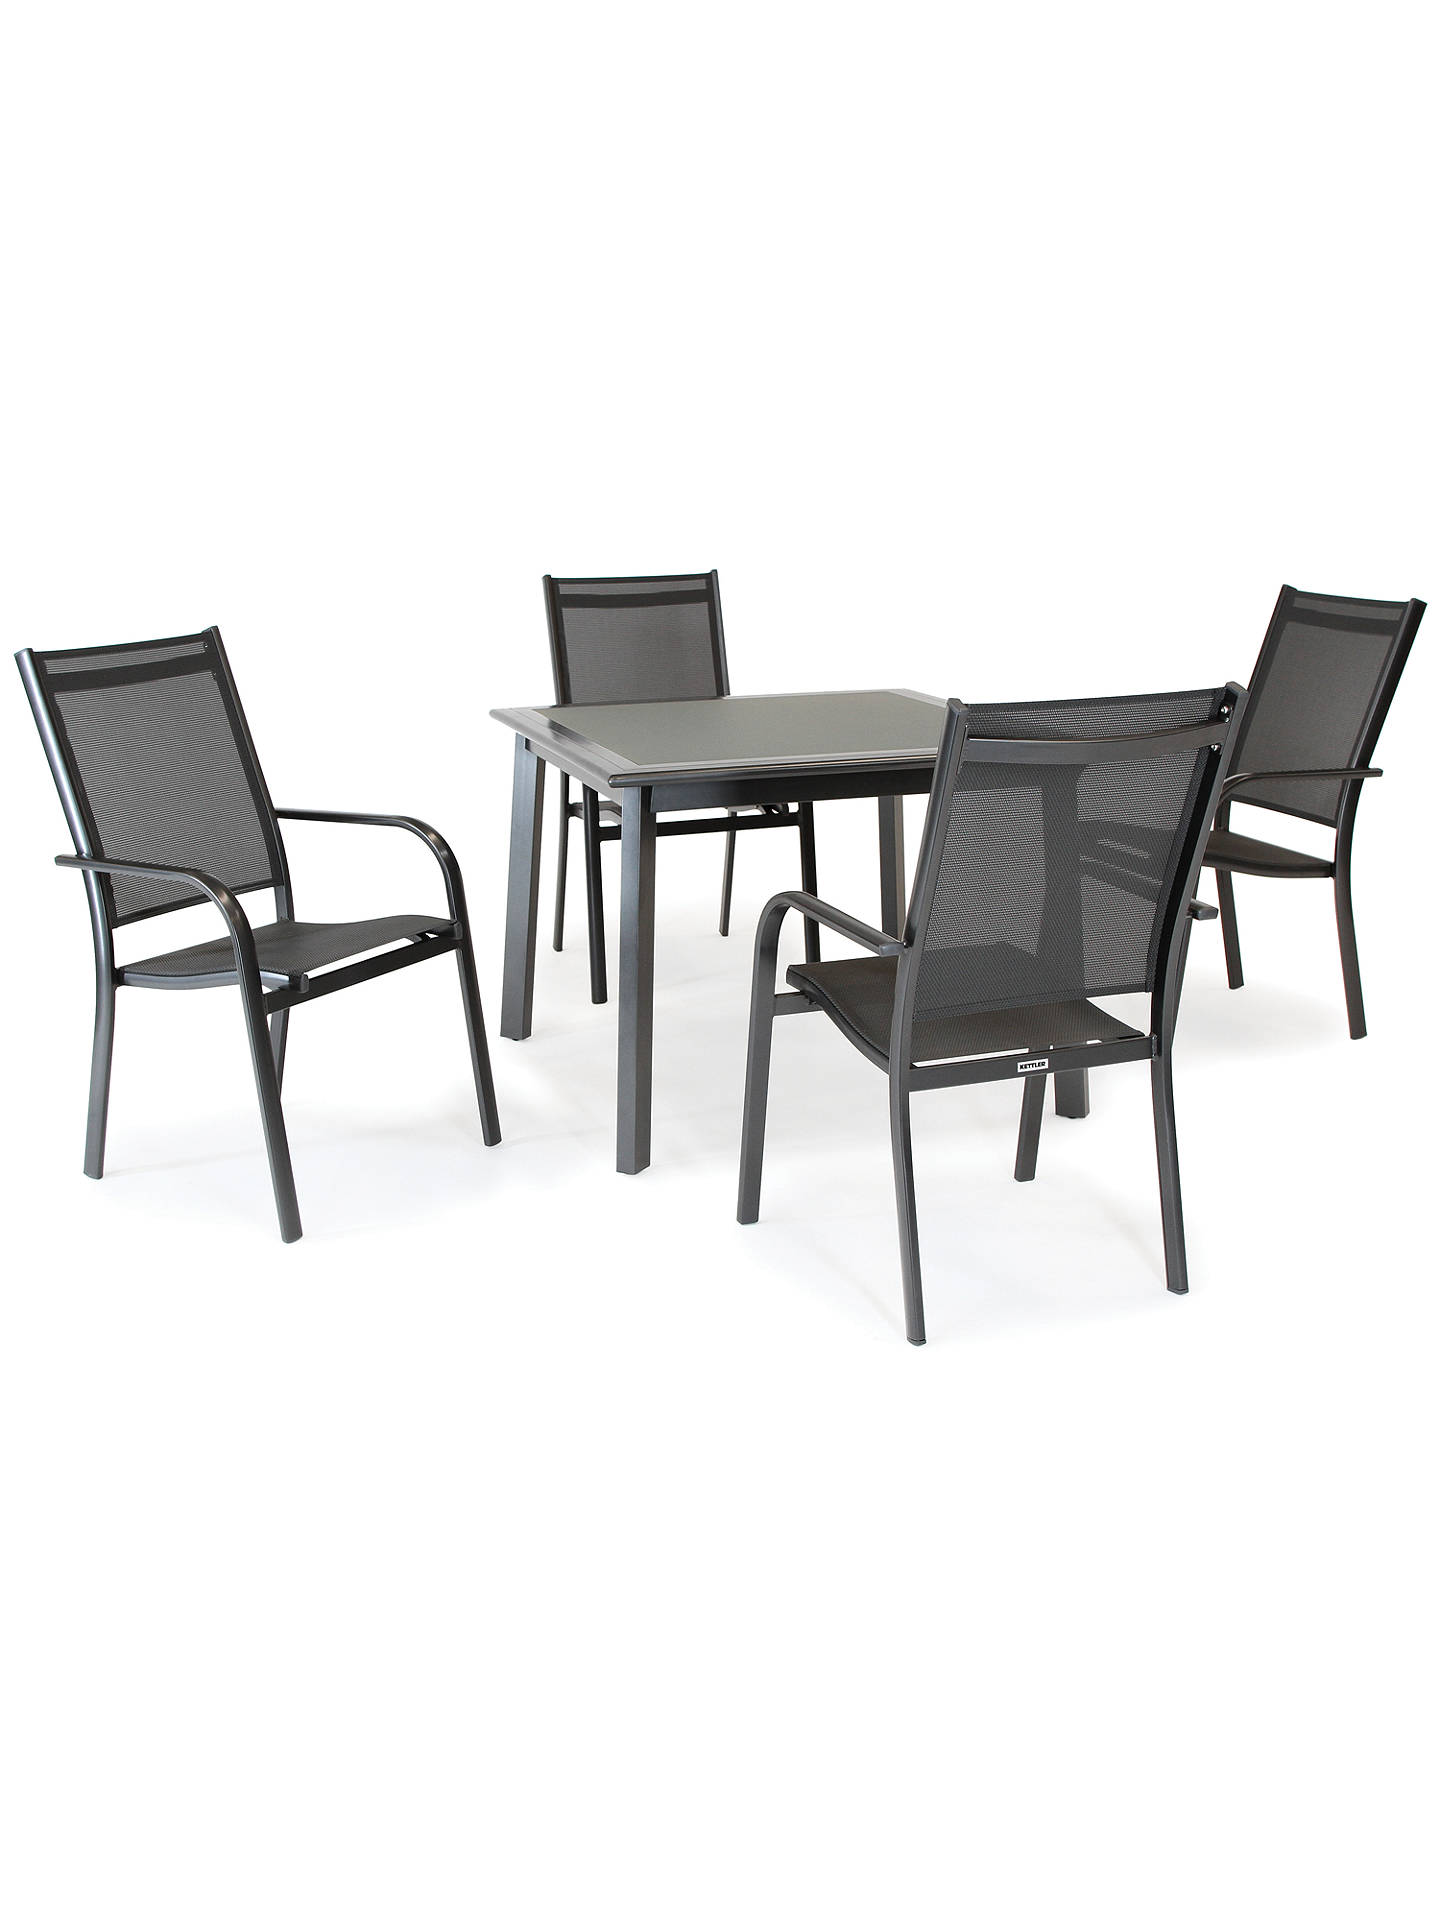 Buykettler surf 4 seater garden dining table and stacking chairs set grey online at johnlewis